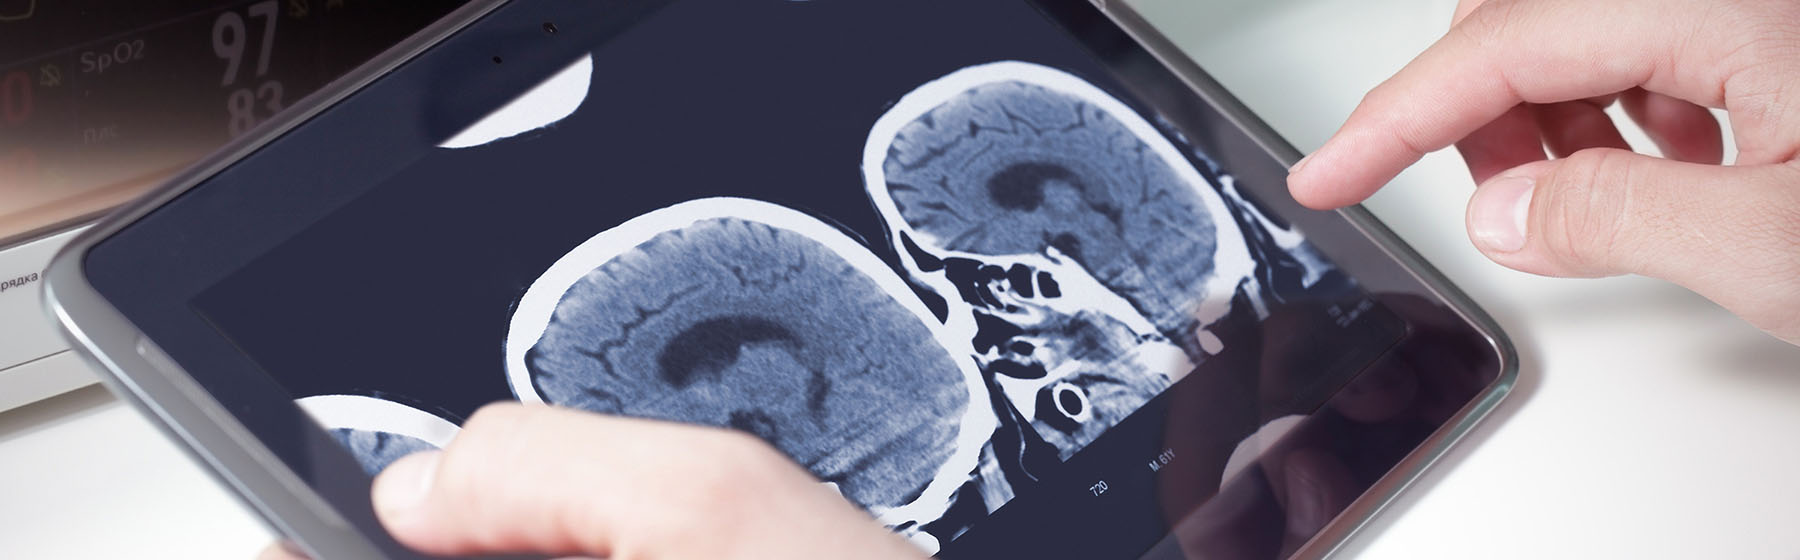 doctors hands holding tablet to review head scans